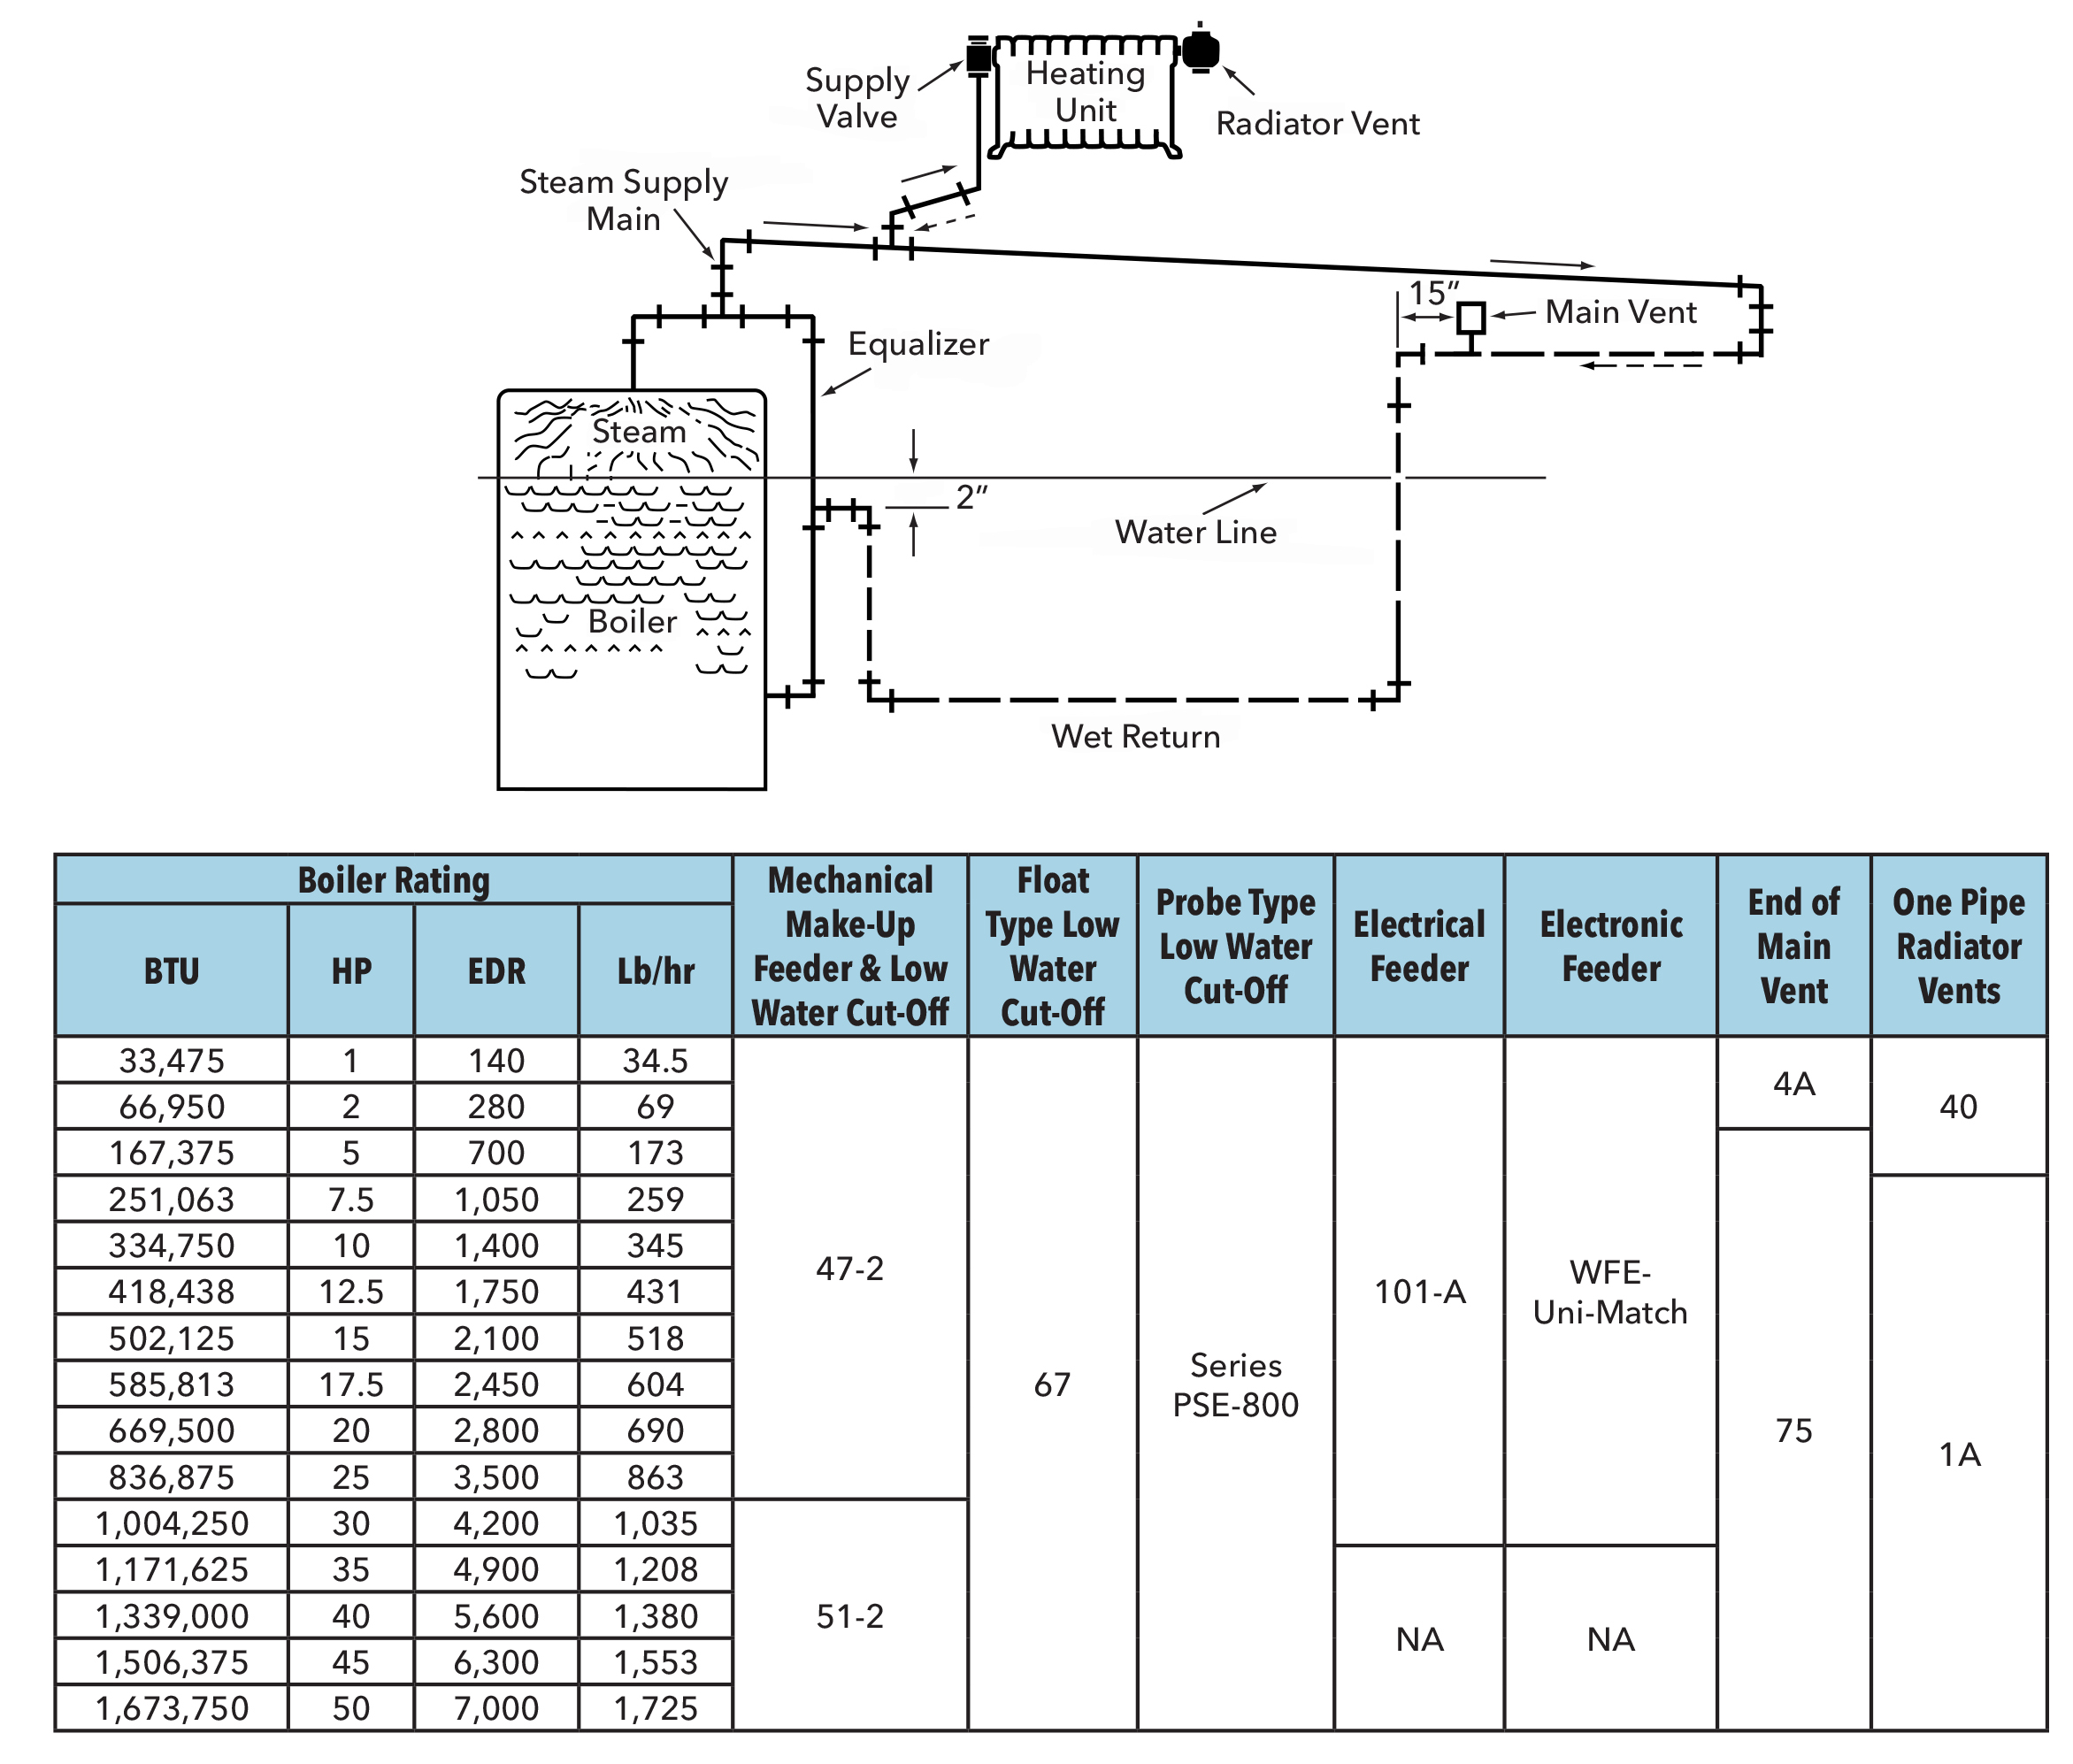 Piping layout and suggested product for one pipe gravity return systems based on system size